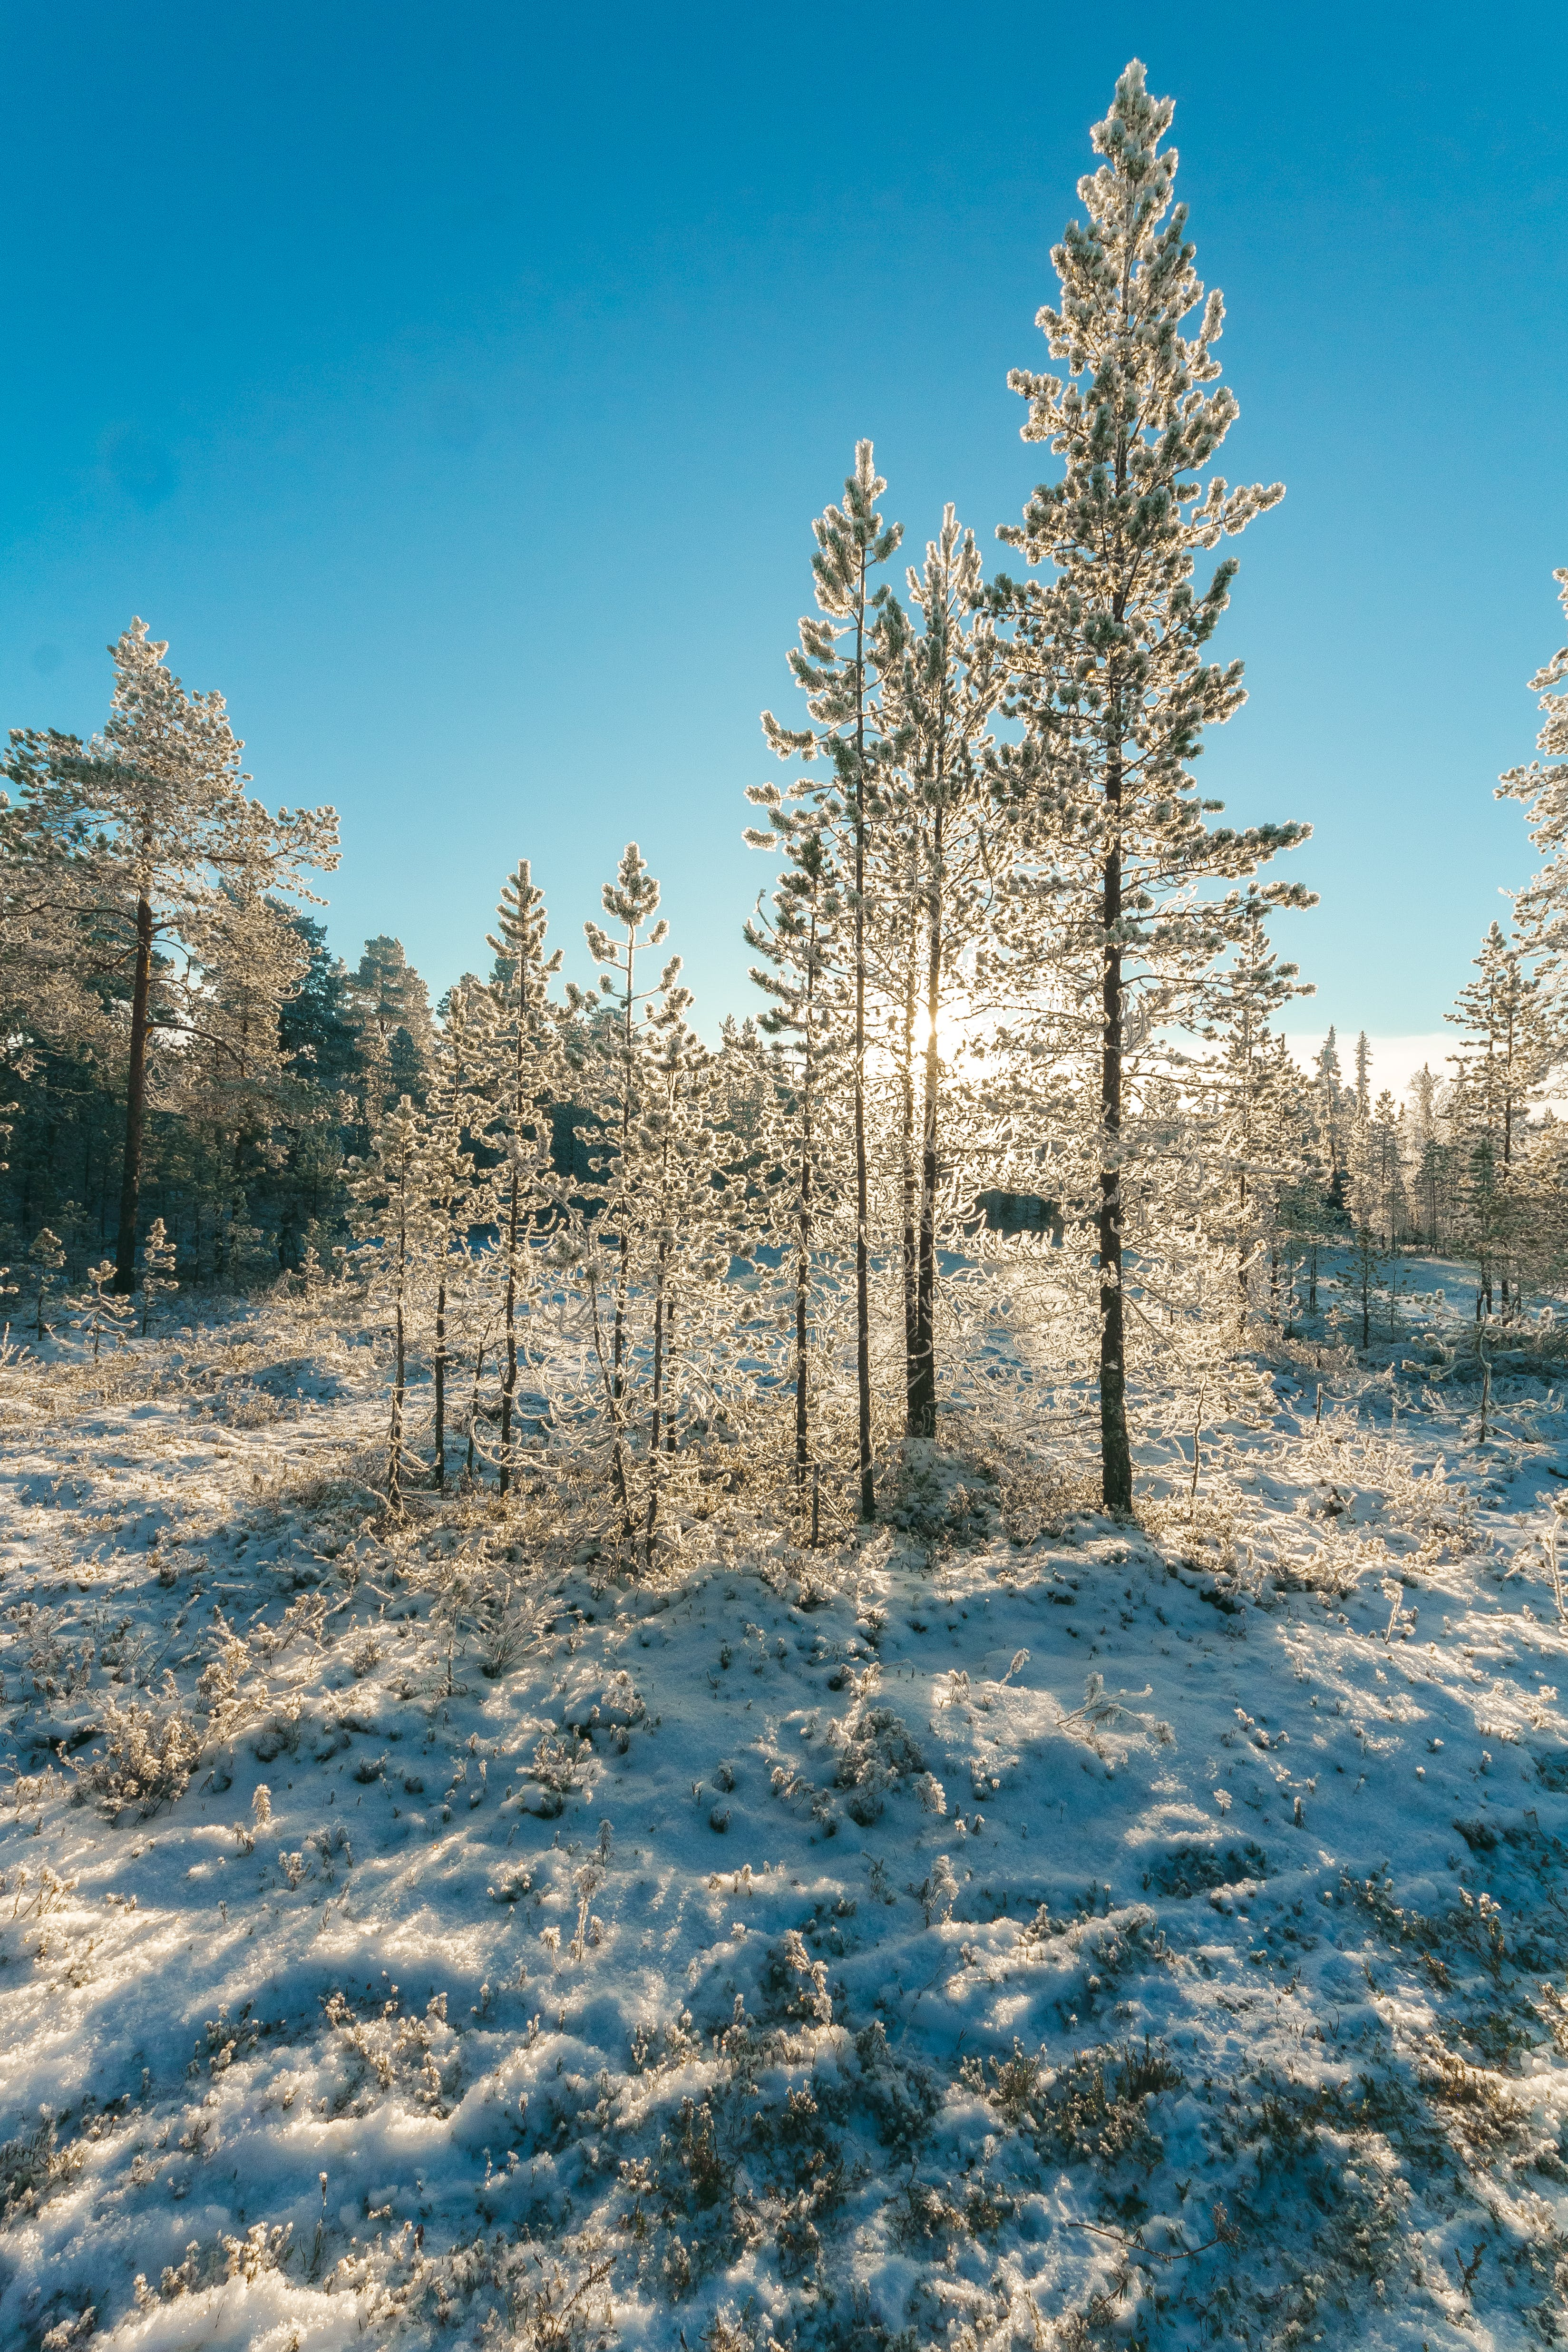 Snow Covered Forest Under Clear Blue Sky